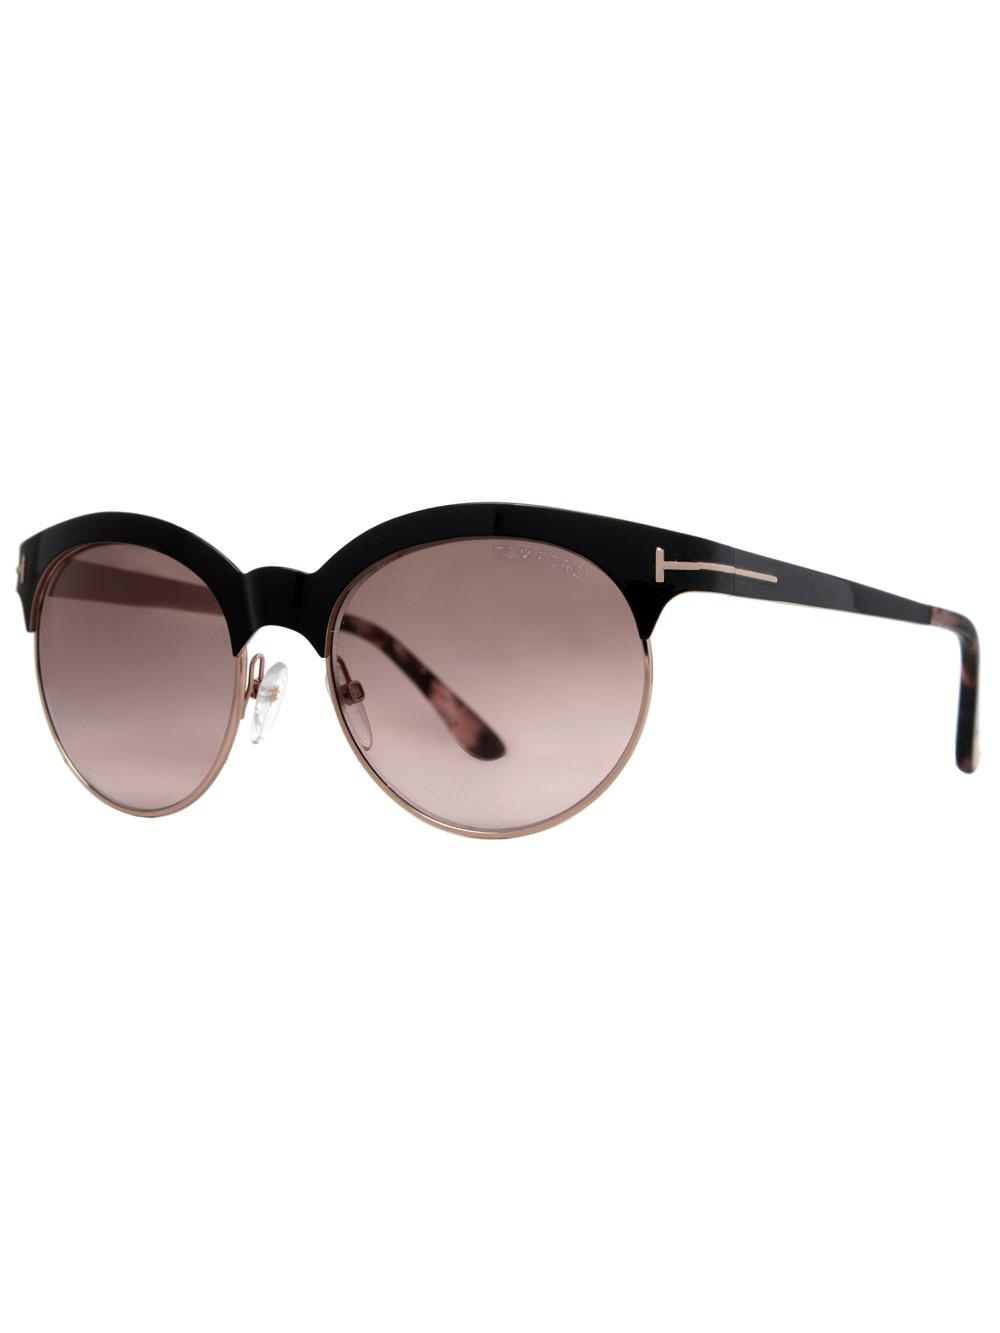 7bb89830018 Lyst - Tom Ford Angela Round Sunglasses in Brown